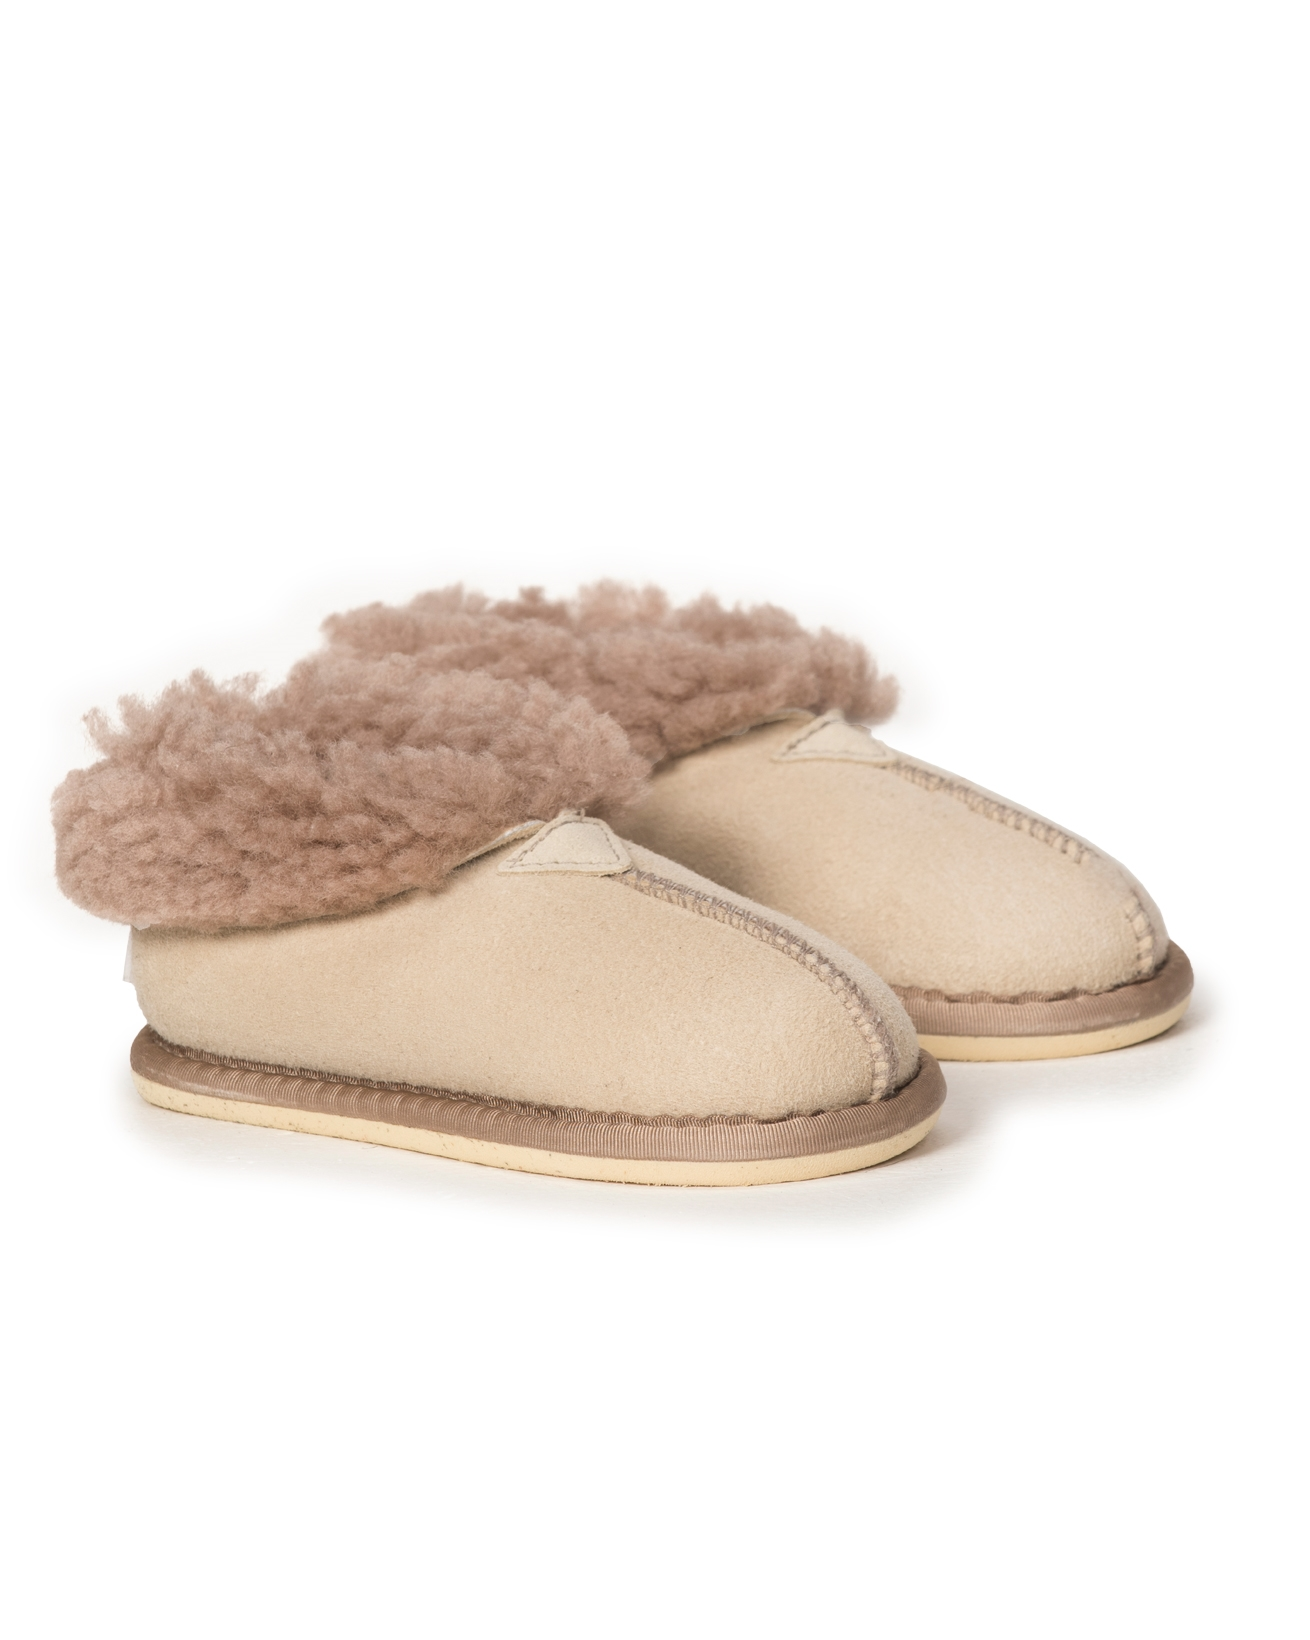 2460-mini-sheepskin-slipper_oatmeal_pair.jpg